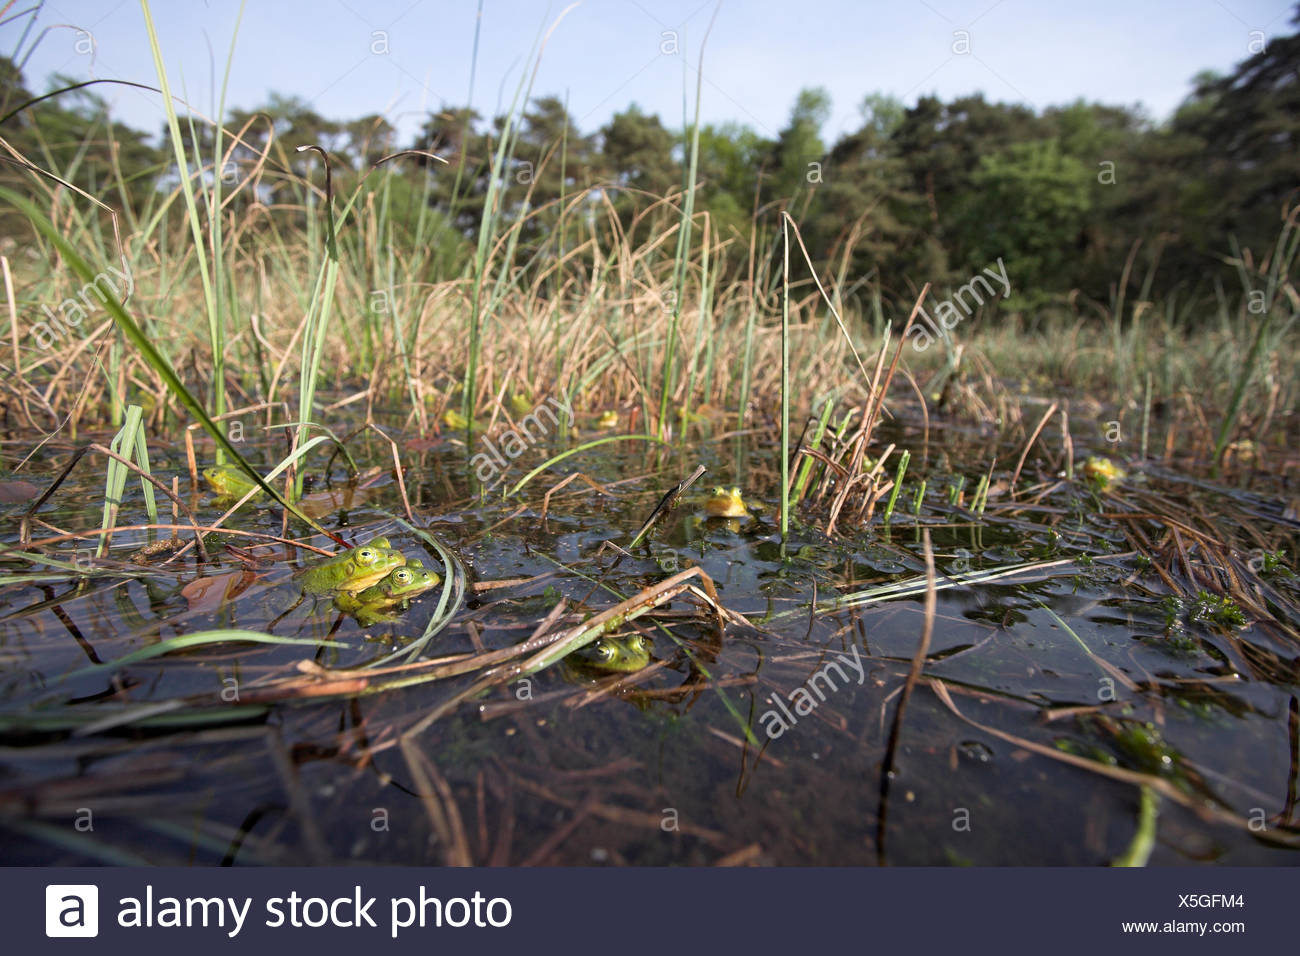 overview of a choir of male poolfrogs in early spring, males of the pool frog turn yellow during breeding season Stock Photo